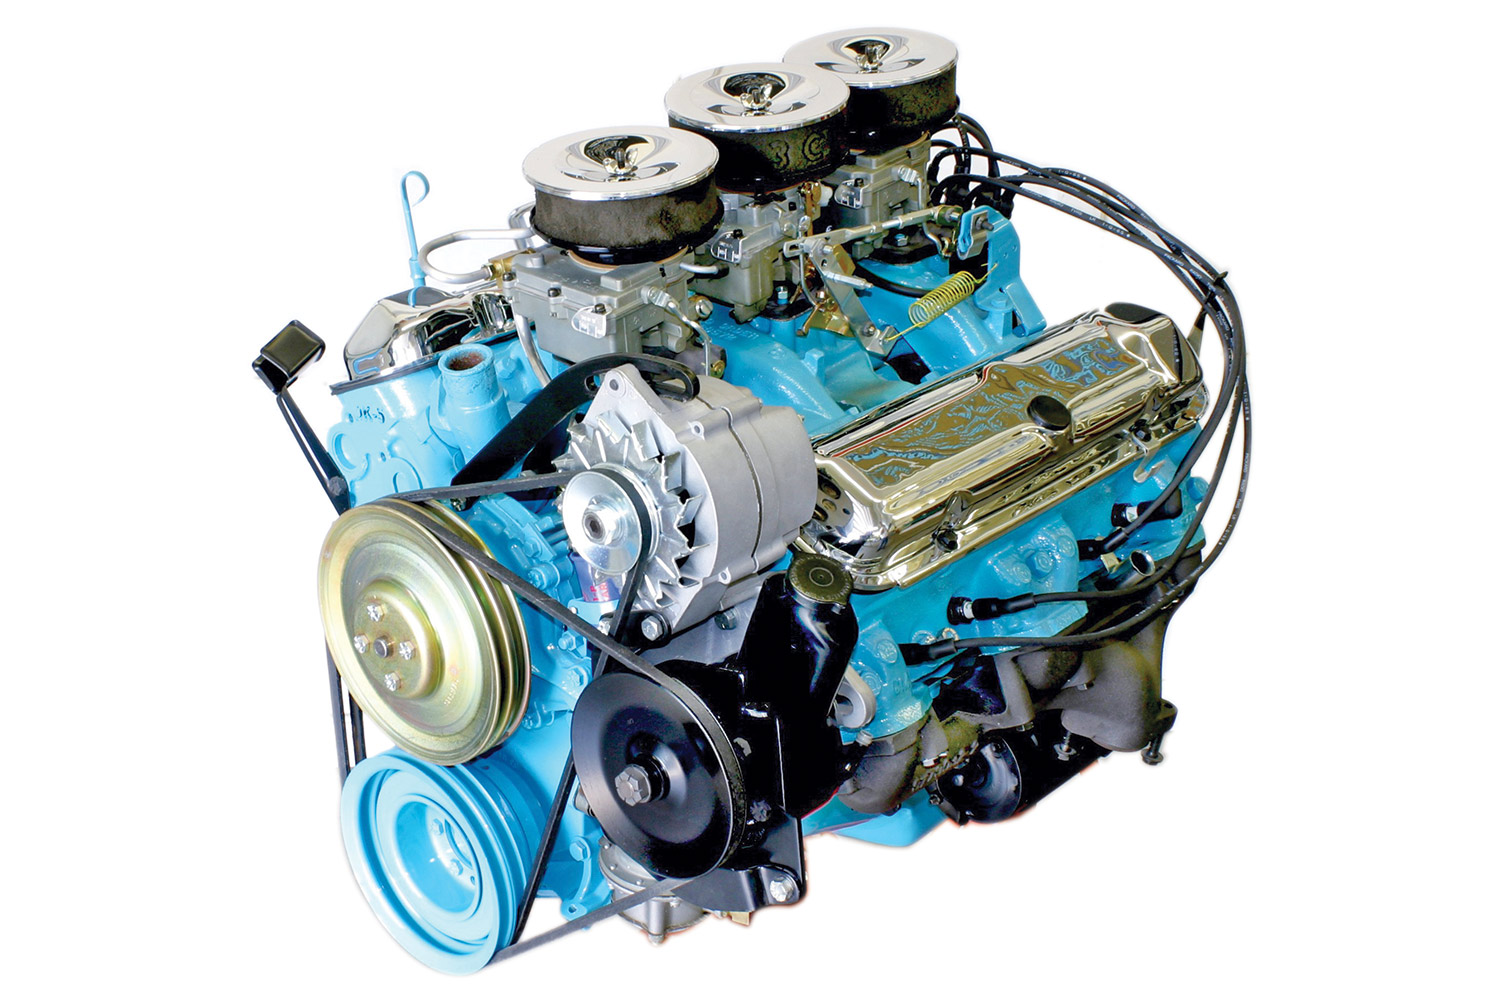 the legendary tri-power 389 engine stands tall among all muscle-car engines